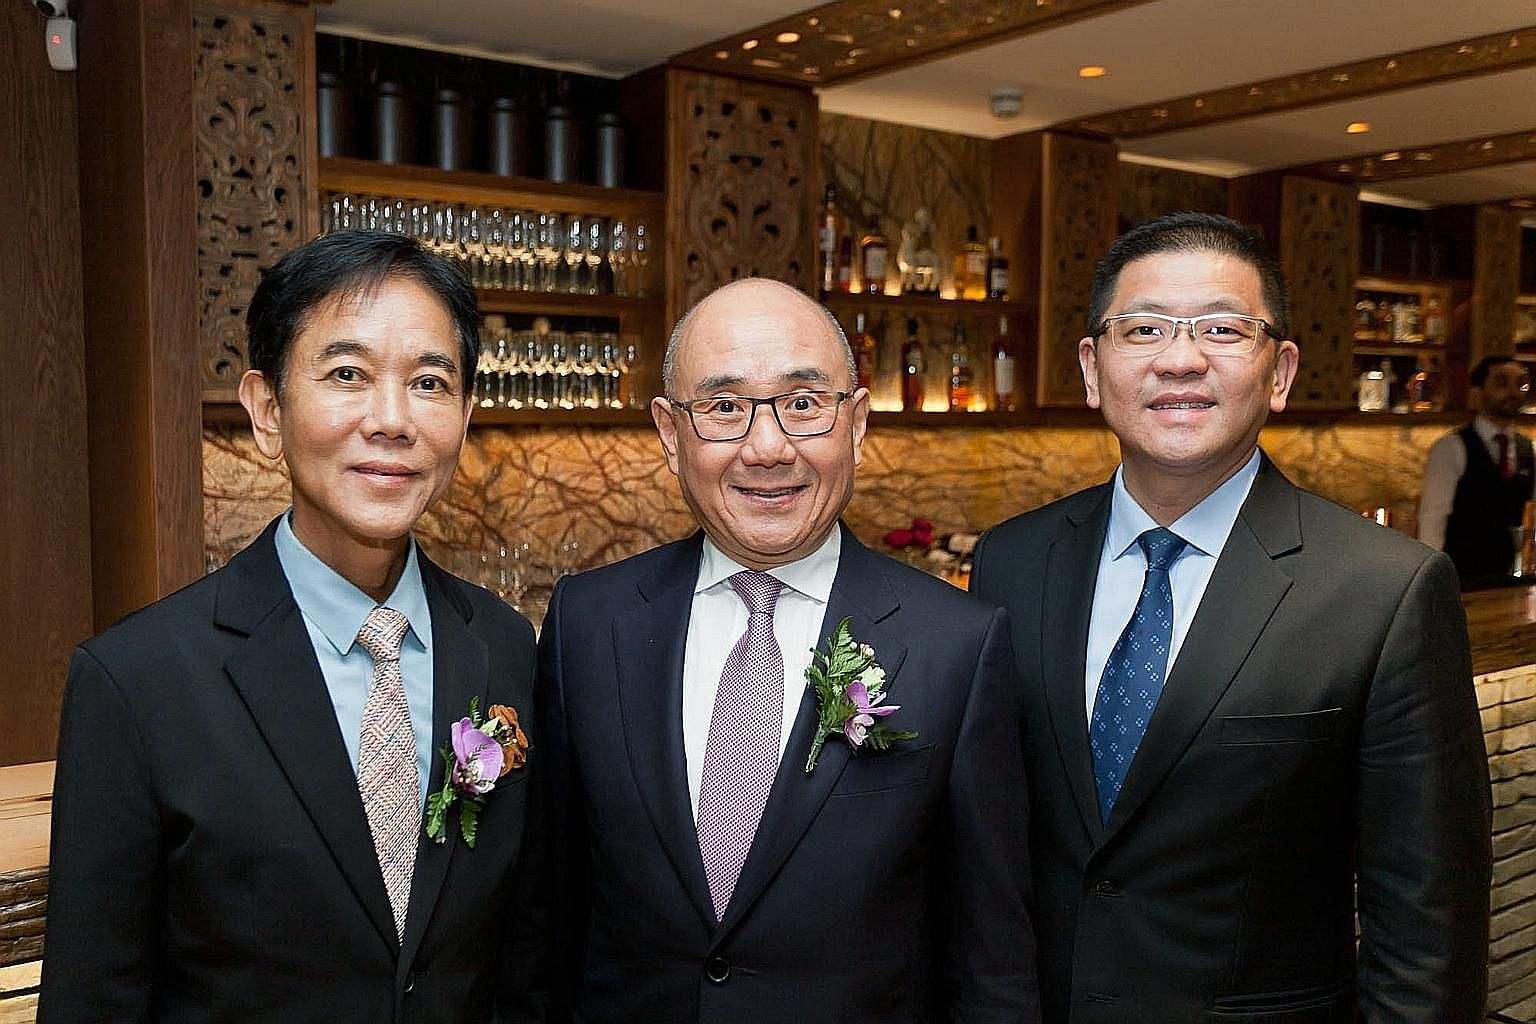 (From far left) BreadTalk founder and chairman George Quek, Din Tai Fung chairman Yang Chi-hwa and BreadTalk Group CEO Henry Chu at the opening of Din Tai Fung's first London branch on Dec 5. The group will open a second London branch in the middle o